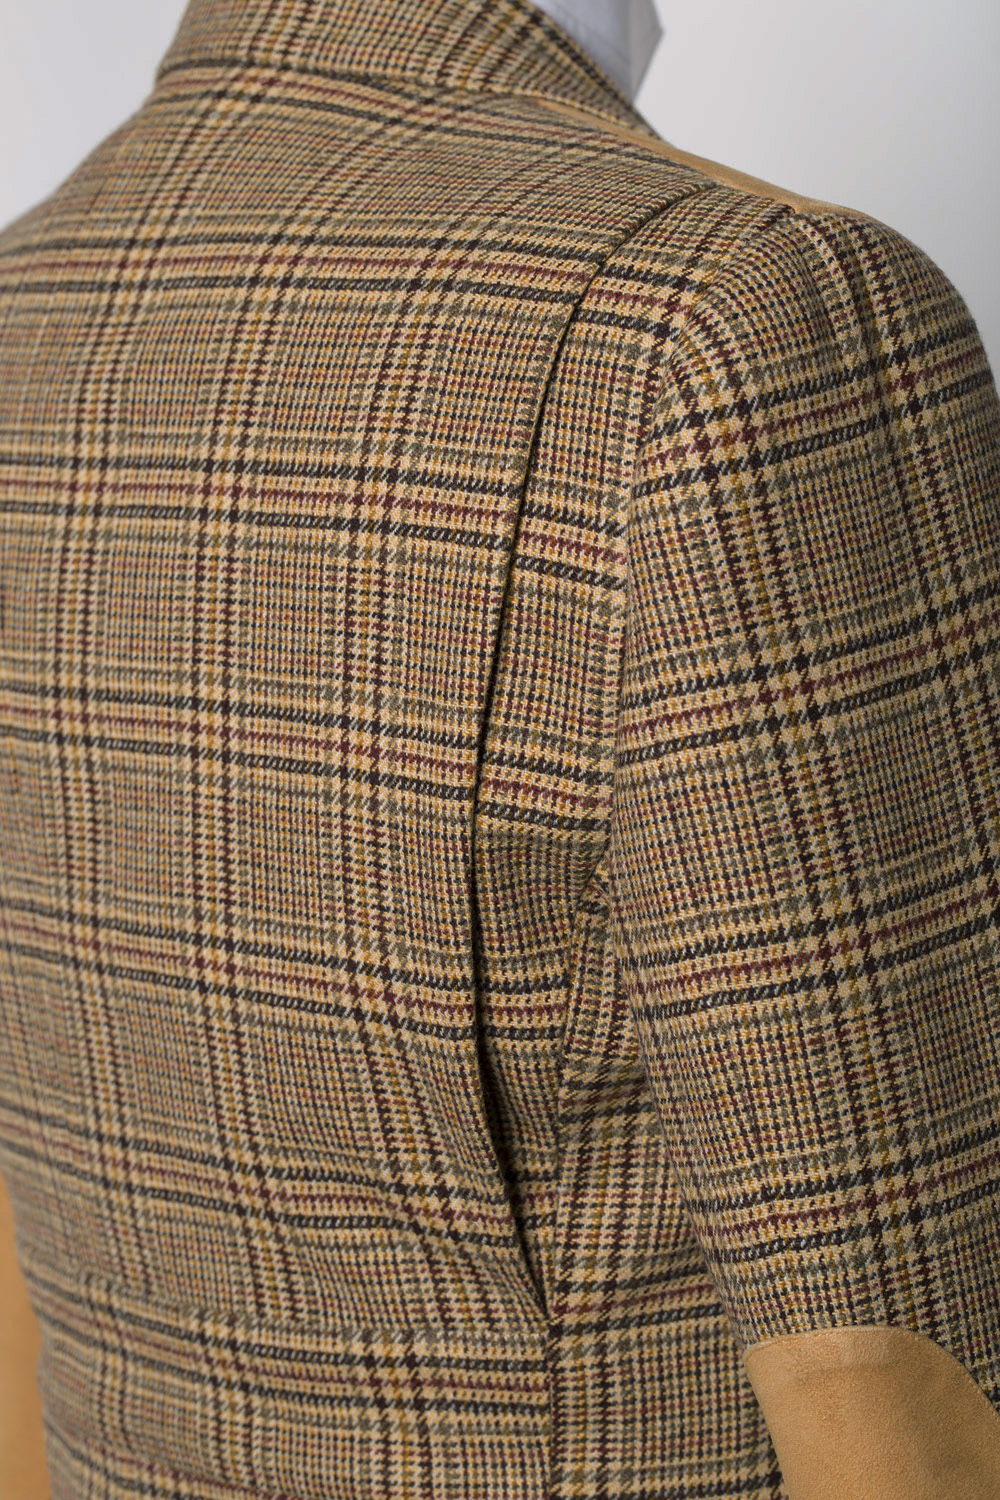 Sport Coat Yellow Hunting Jacket Yorkshire Kloffman